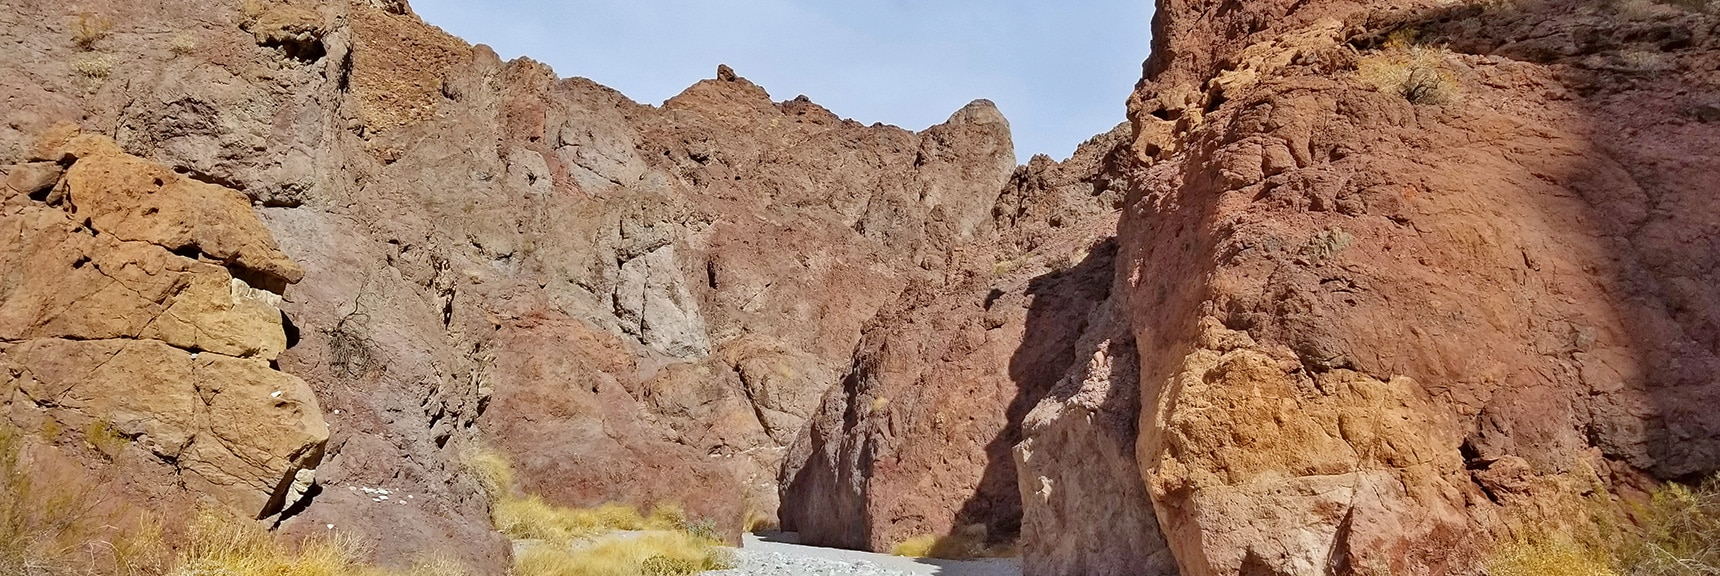 Continuing to Wind Down White Rock Canyon. Fine Deep Gravel Surface. | Arizona Hot Spring | Liberty Bell Arch | Lake Mead National Recreation Area, Arizona